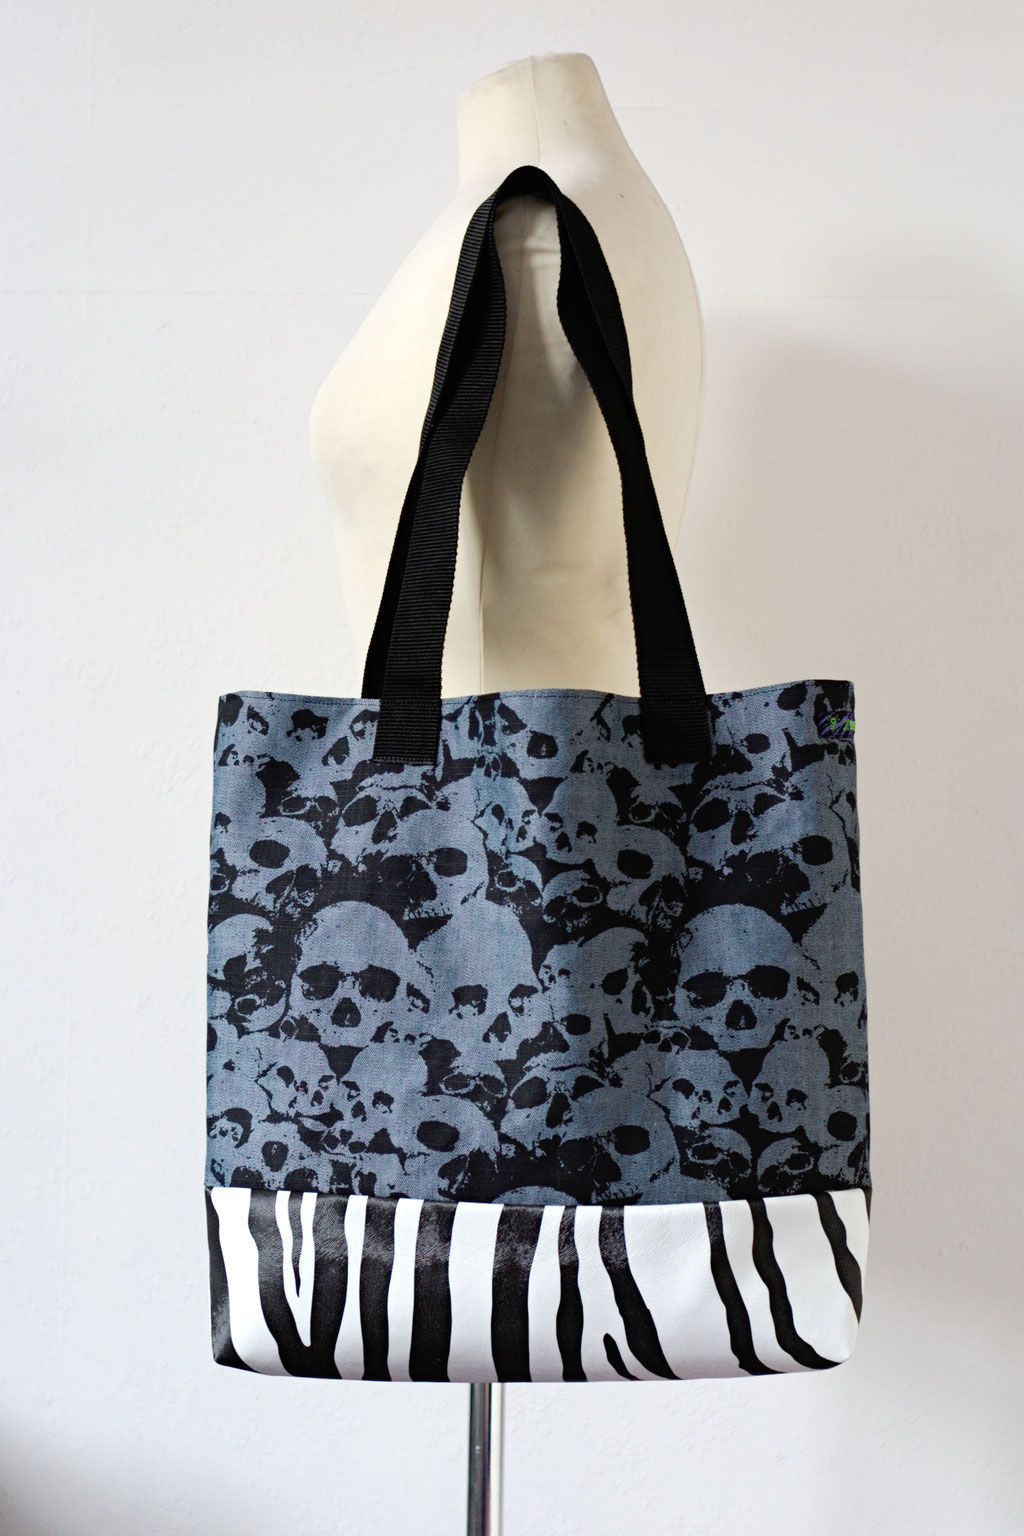 2021 belt bags and new shoulder bags out now! - Tote Bag Skulls & Zebra - Zebraspider Eco Anti-Fashion